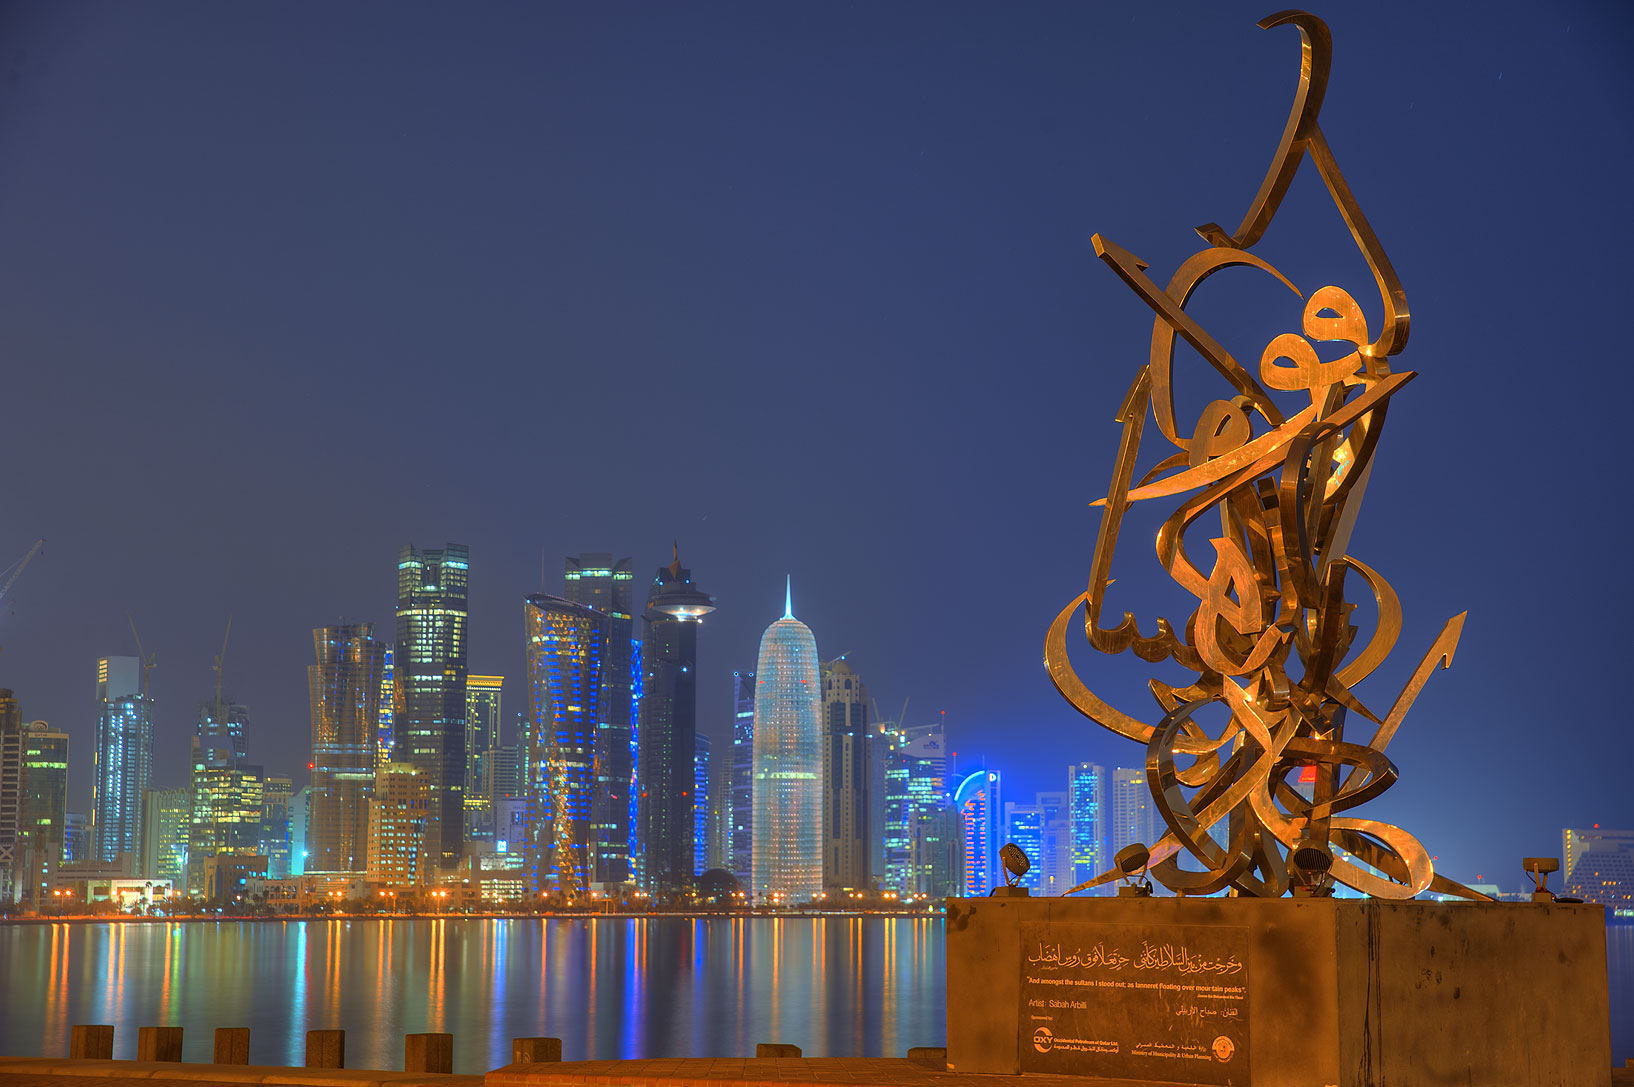 Calligraphy Sculpture by Sabah Arbilli on Corniche Promenade. Doha, Qatar